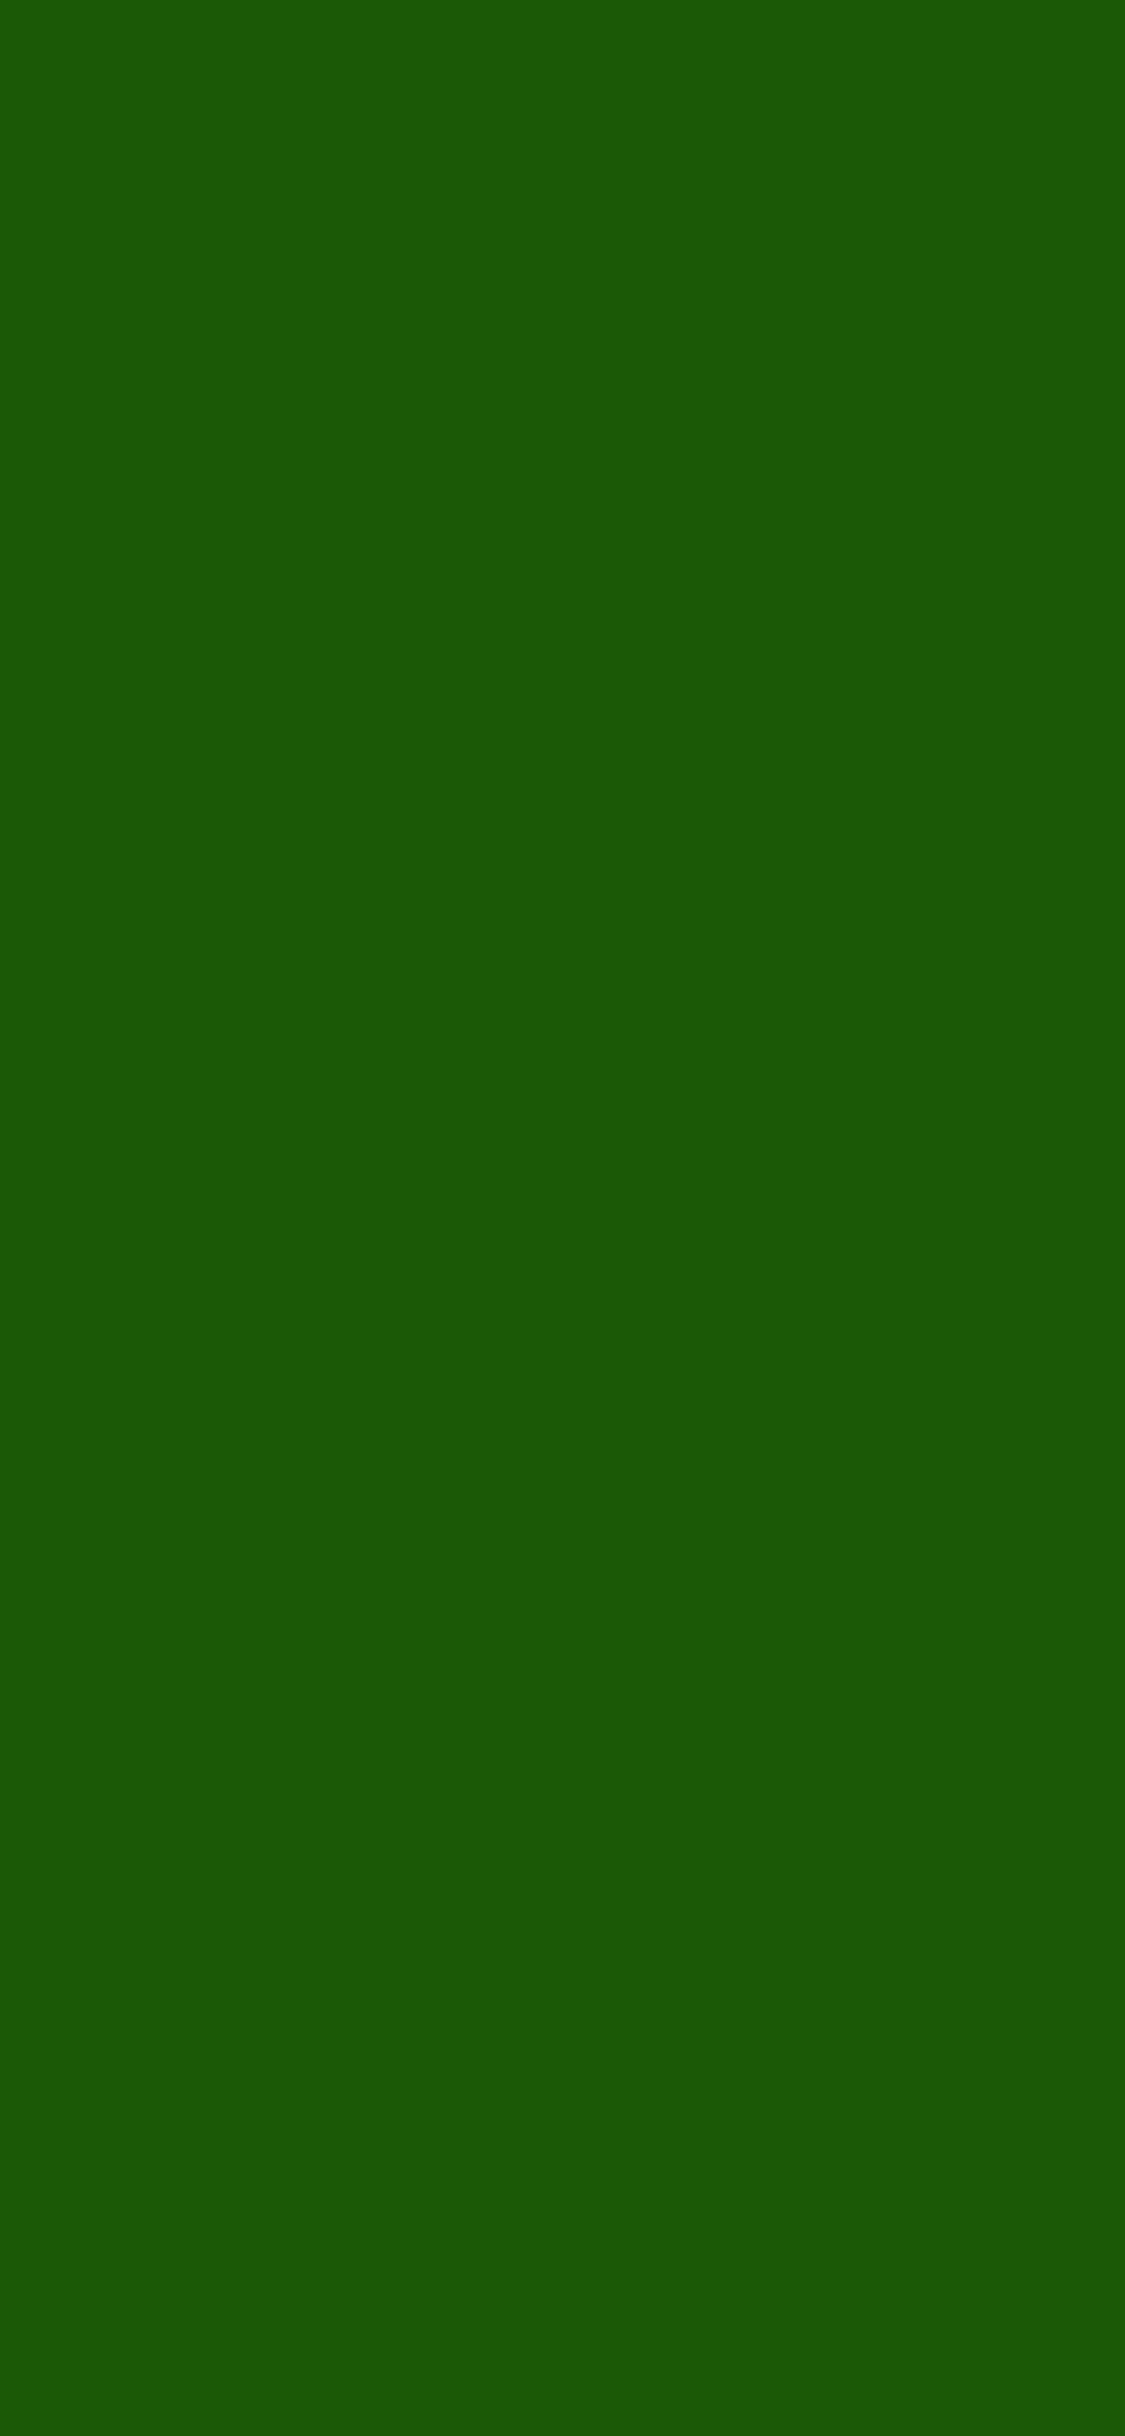 1125x2436 Lincoln Green Solid Color Background